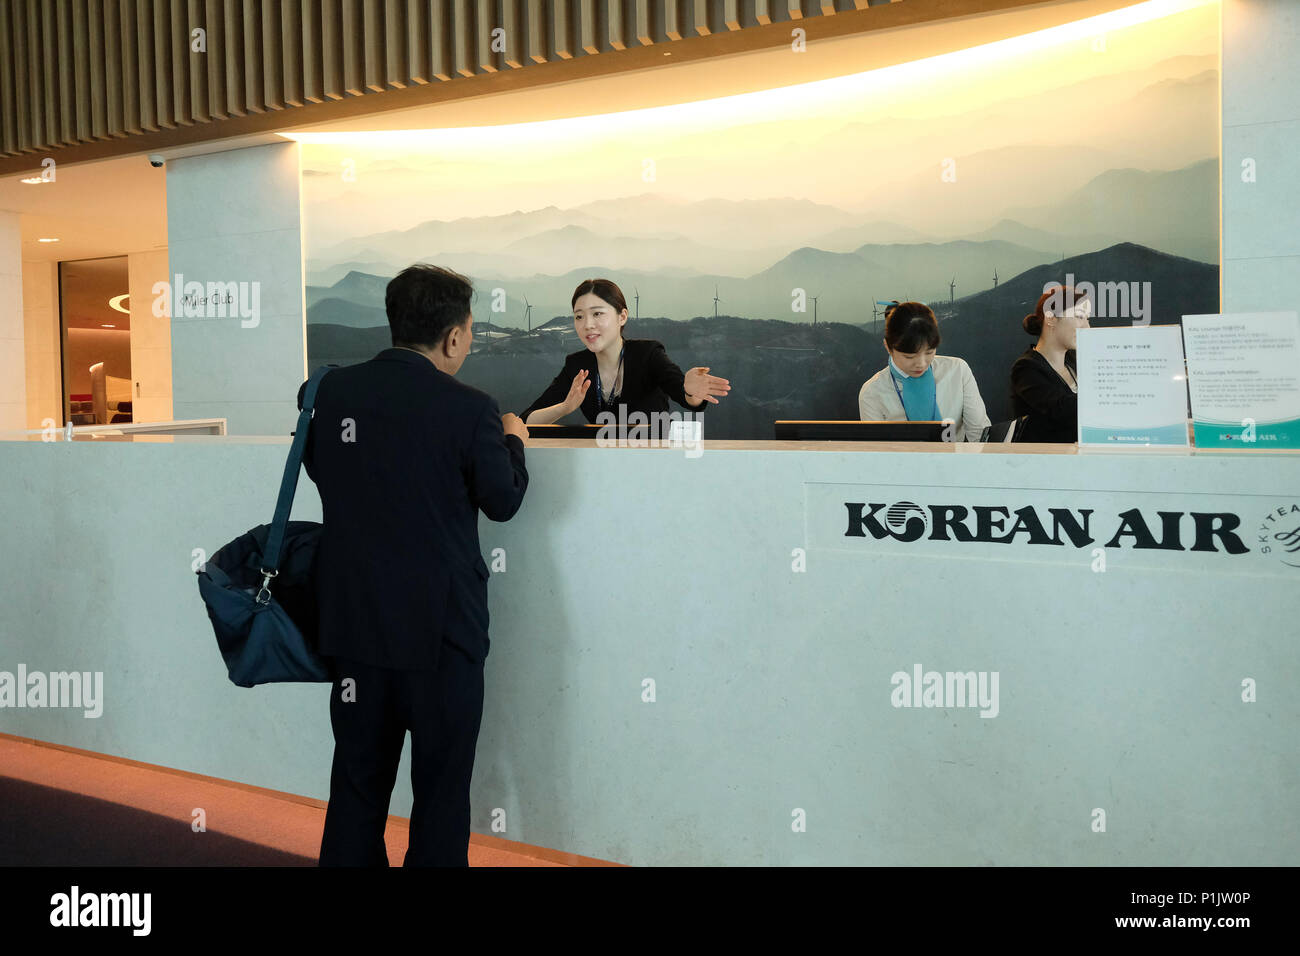 A Korean Air ground staff member guides a passenger at the Miler Club Lounge at the new passenger terminal 2 of Incheon International Airport sometimes referred to as Seoul–Incheon International Airport the largest airport in South Korea located west of the city of Incheon - Stock Image